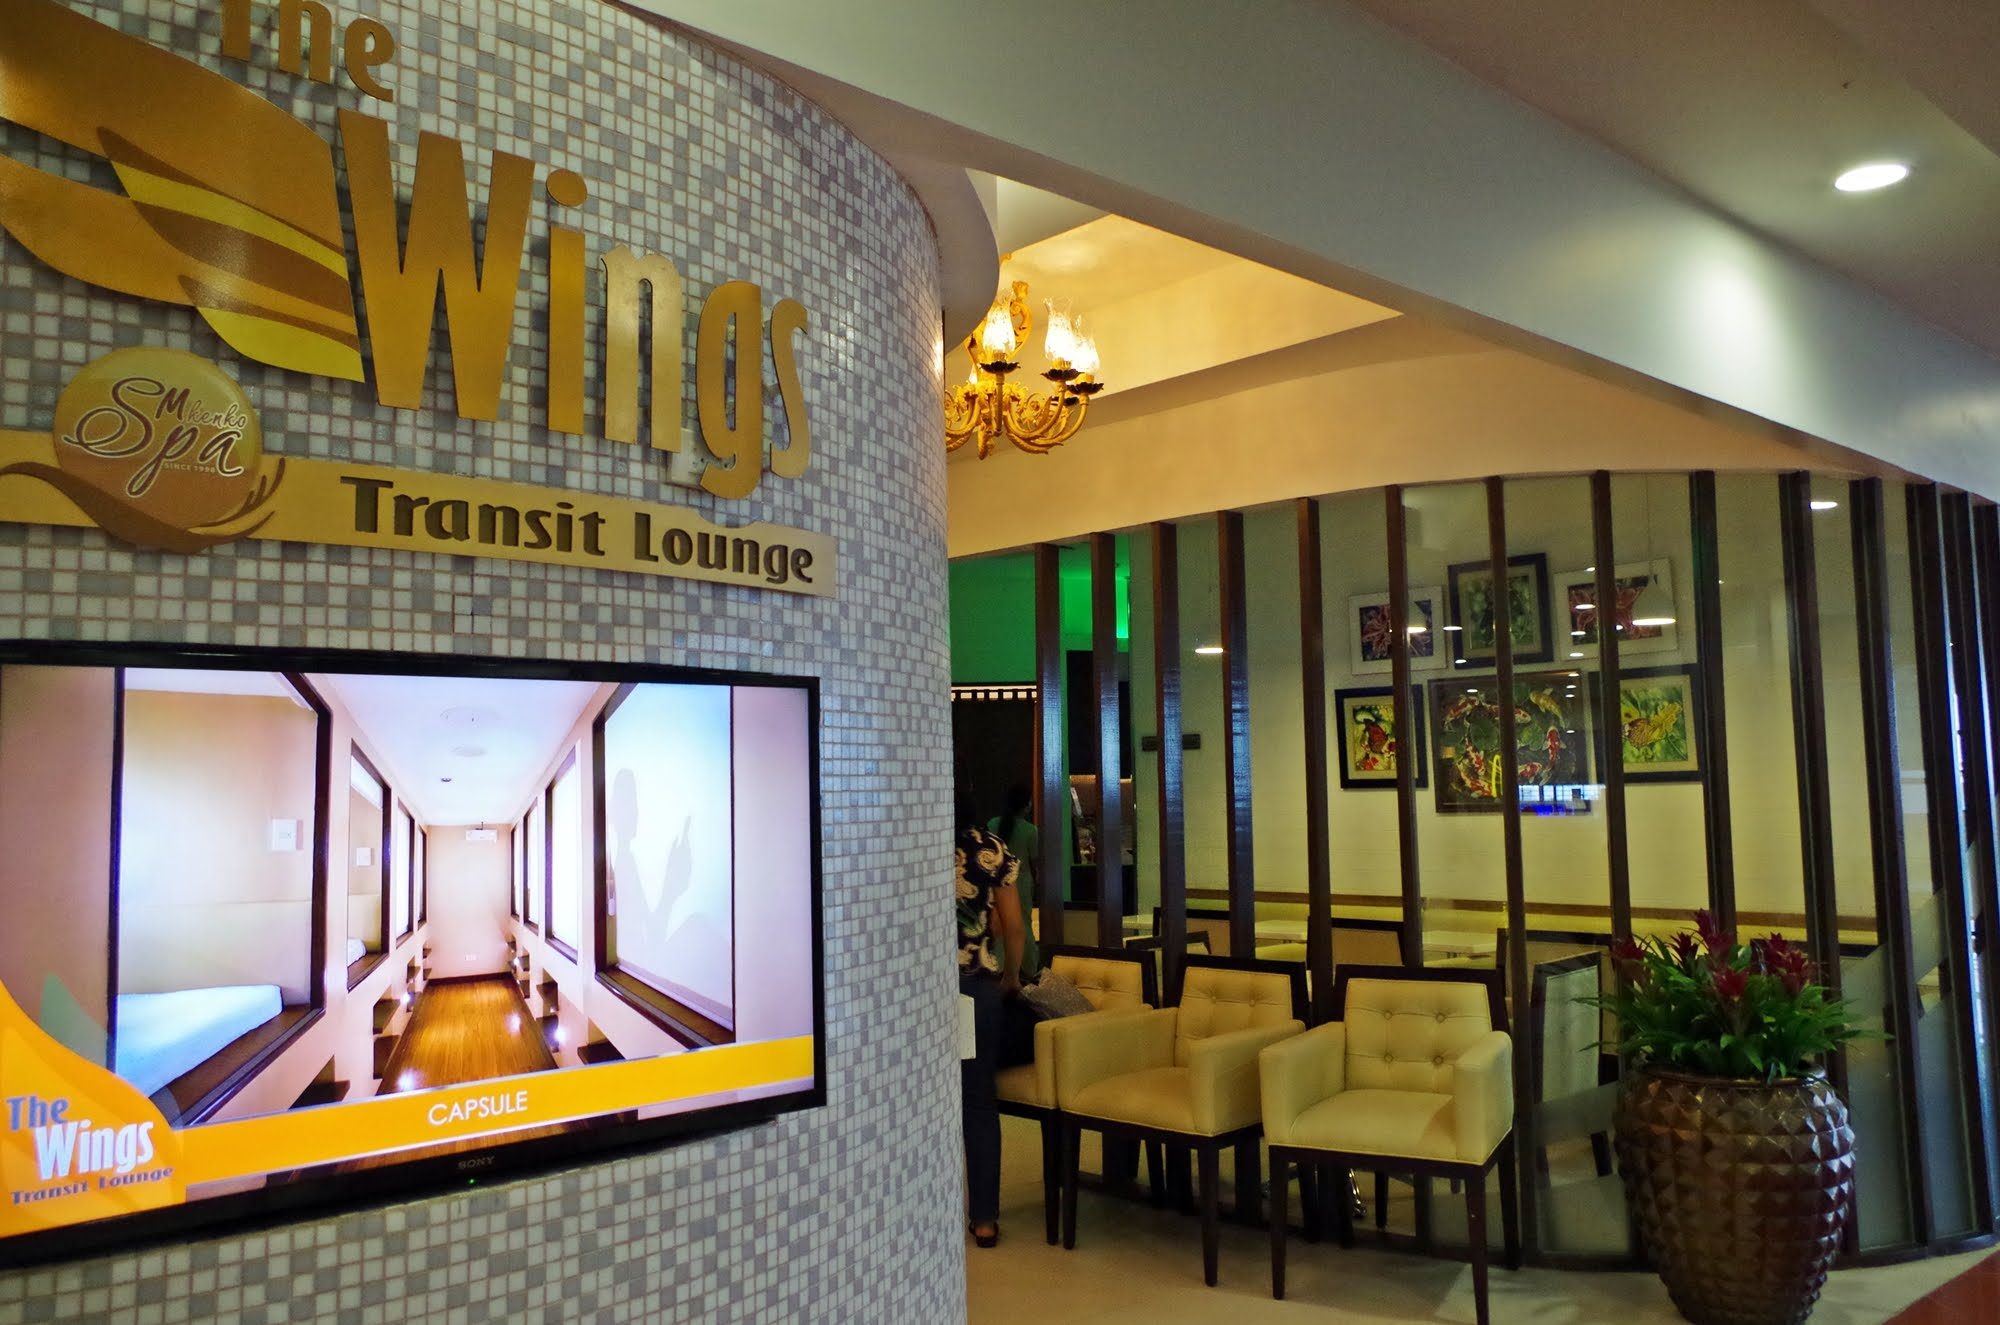 TRAVEL: NOW OPEN TRANSIT LOUNGE FOR YOU TO SLEEP OVER AT NAIA AIRPORT